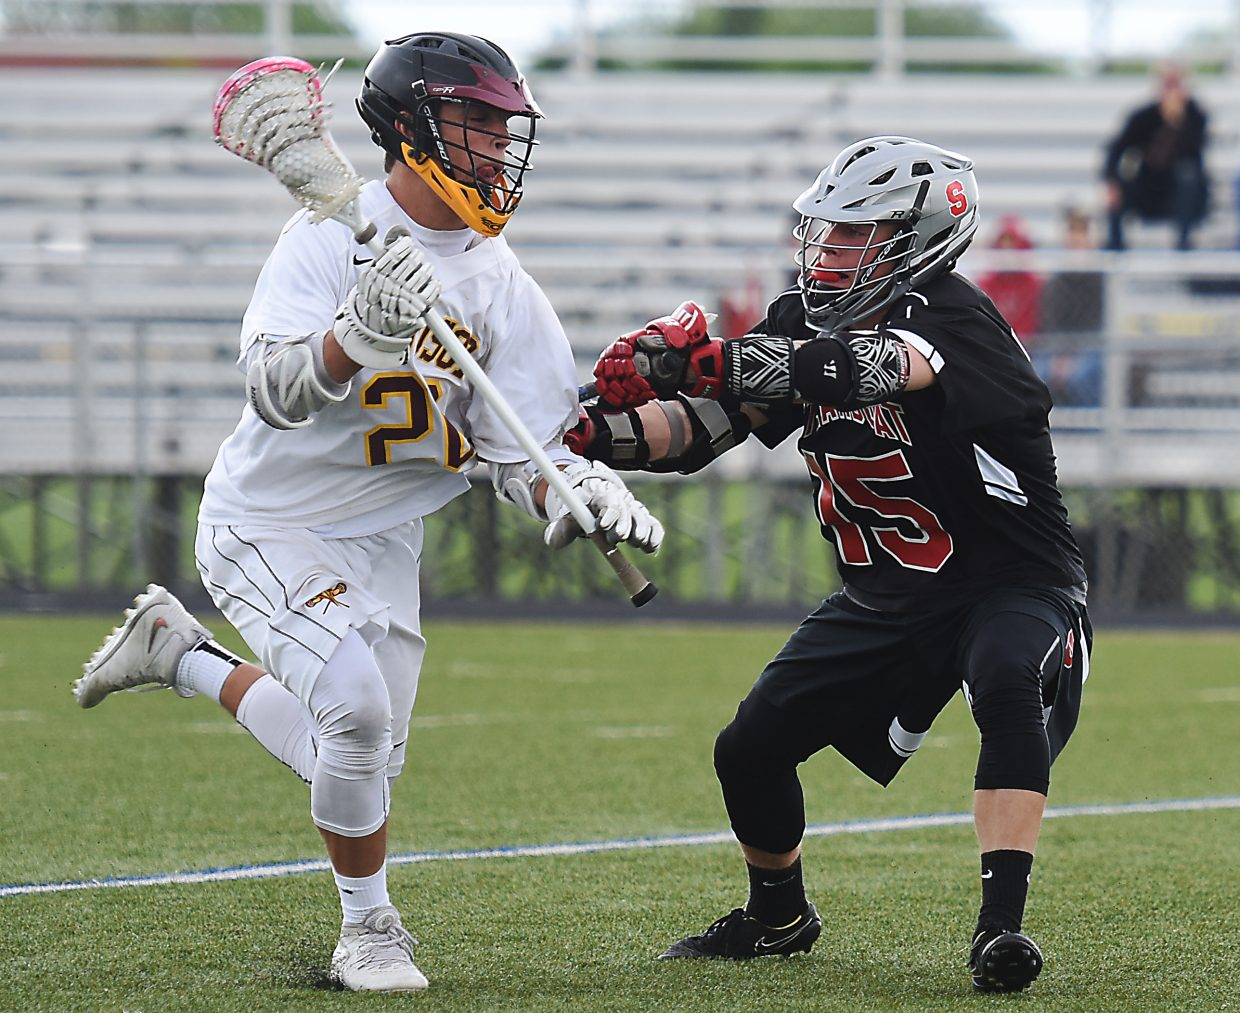 Steamboat's Will Petersen checks his opponent Wednesday during the state lacrosse playoffs.